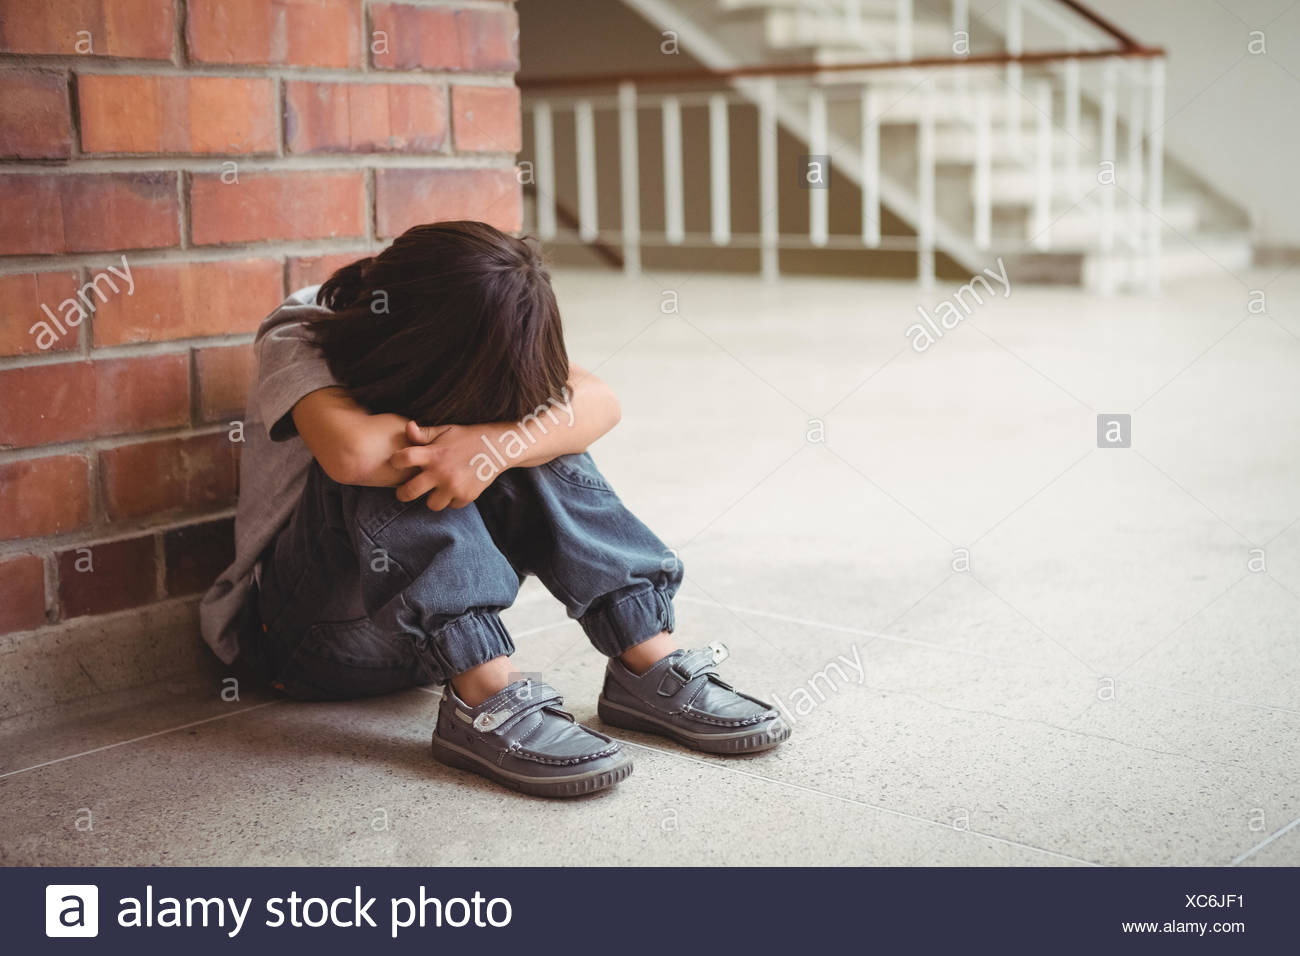 Upset lonely child sitting by himself - Stock Image